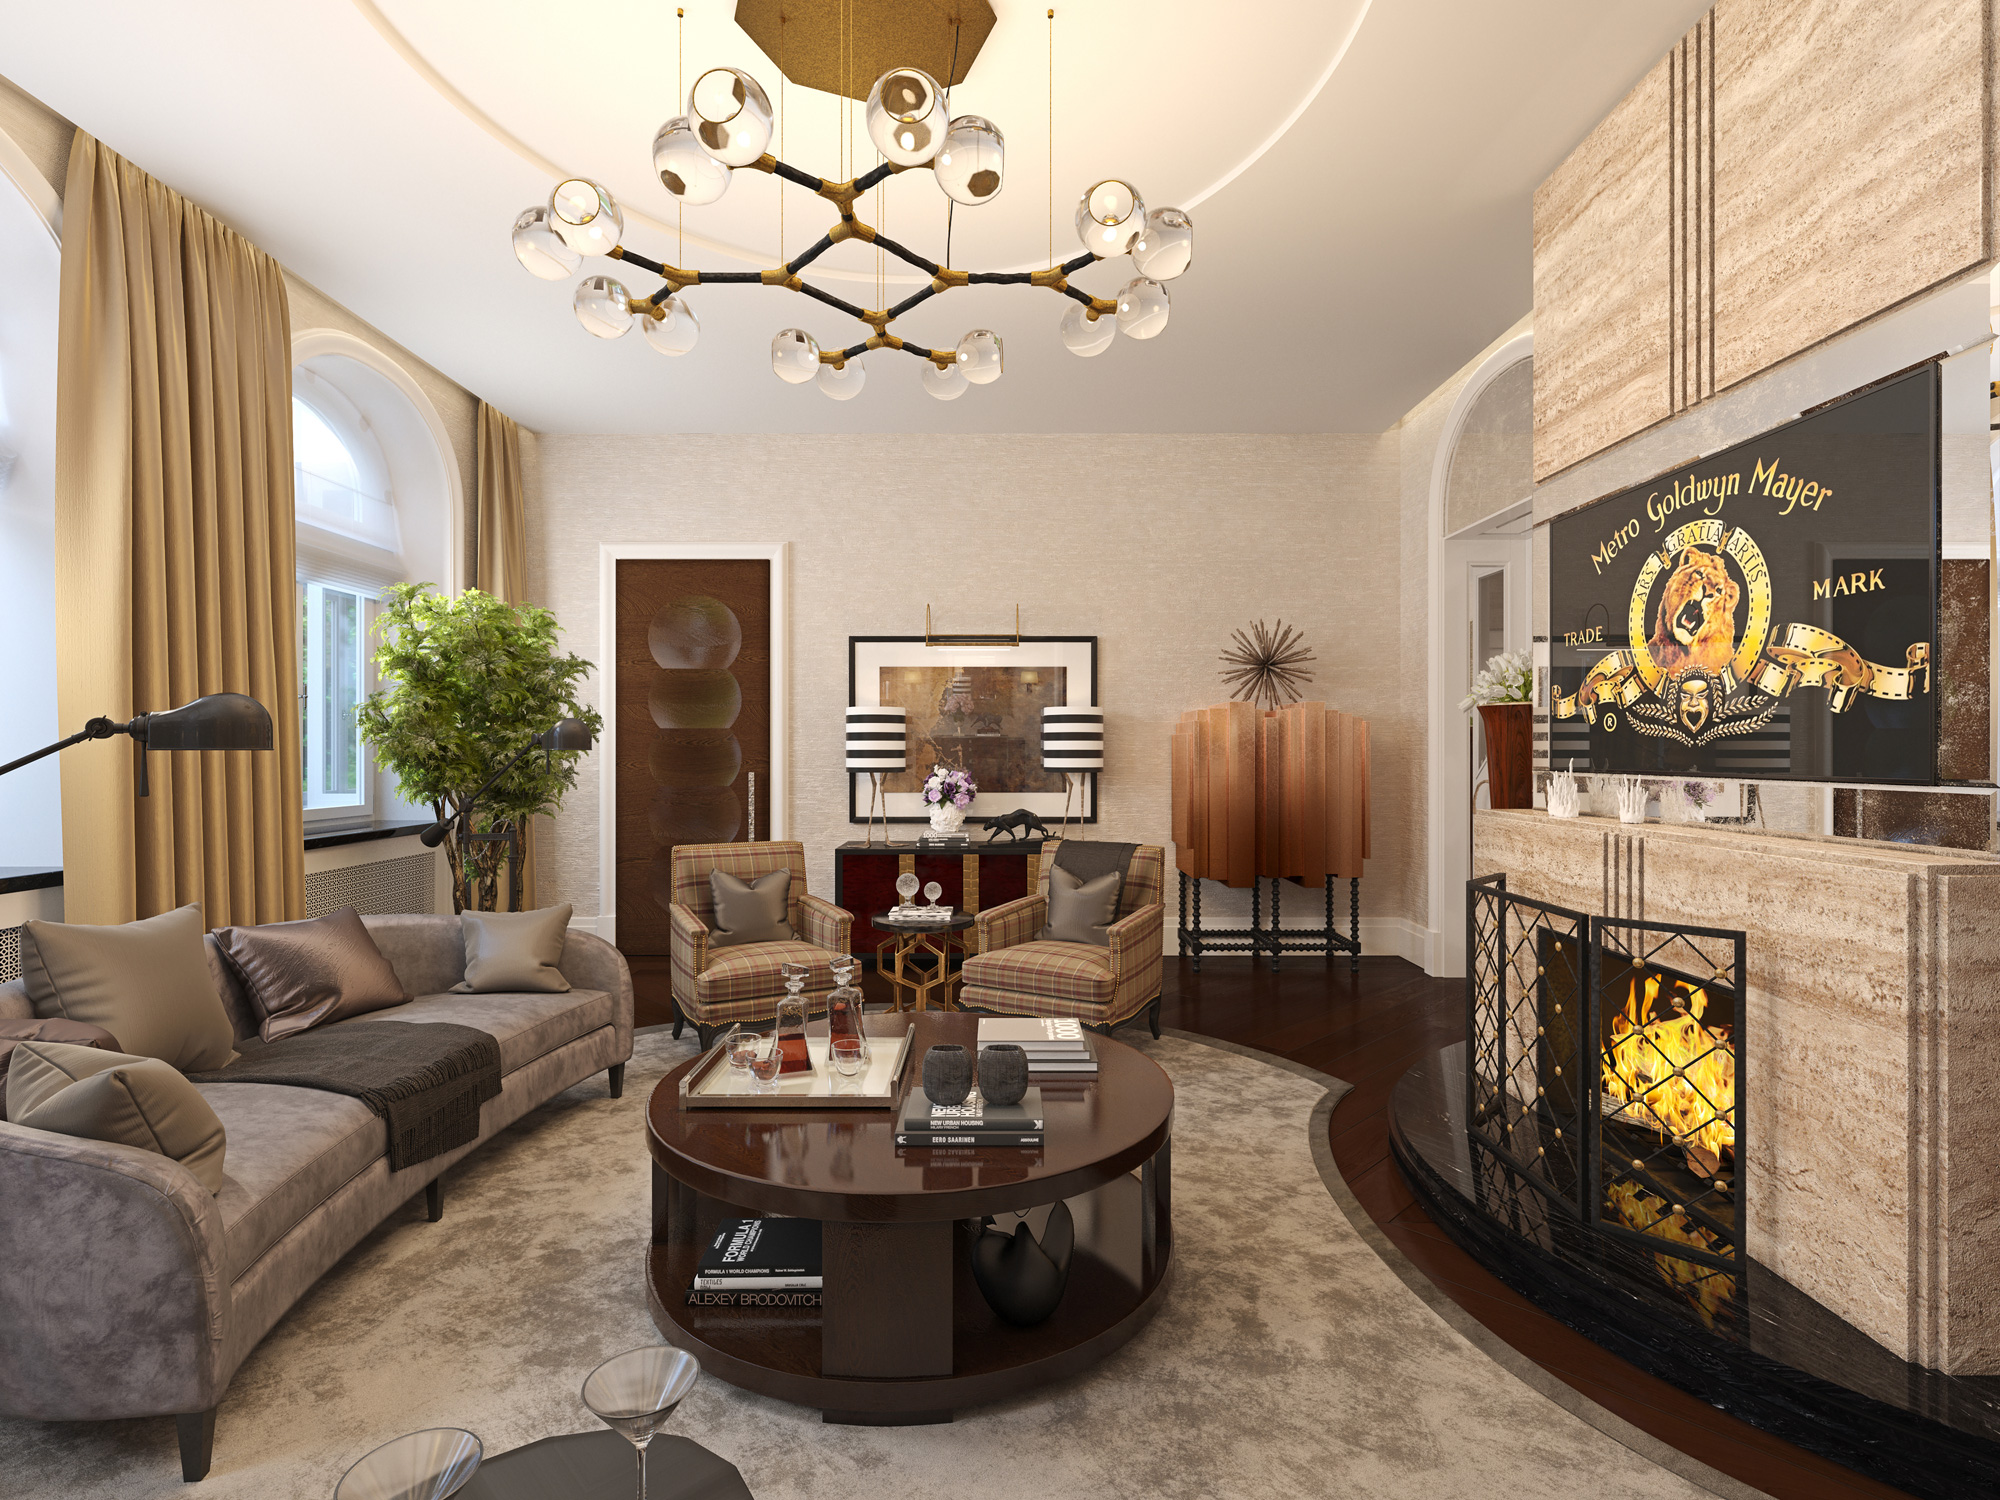 Luxurious Living Room Design 6 Luxury Living Room Ideas With Incredible Lighting Designs